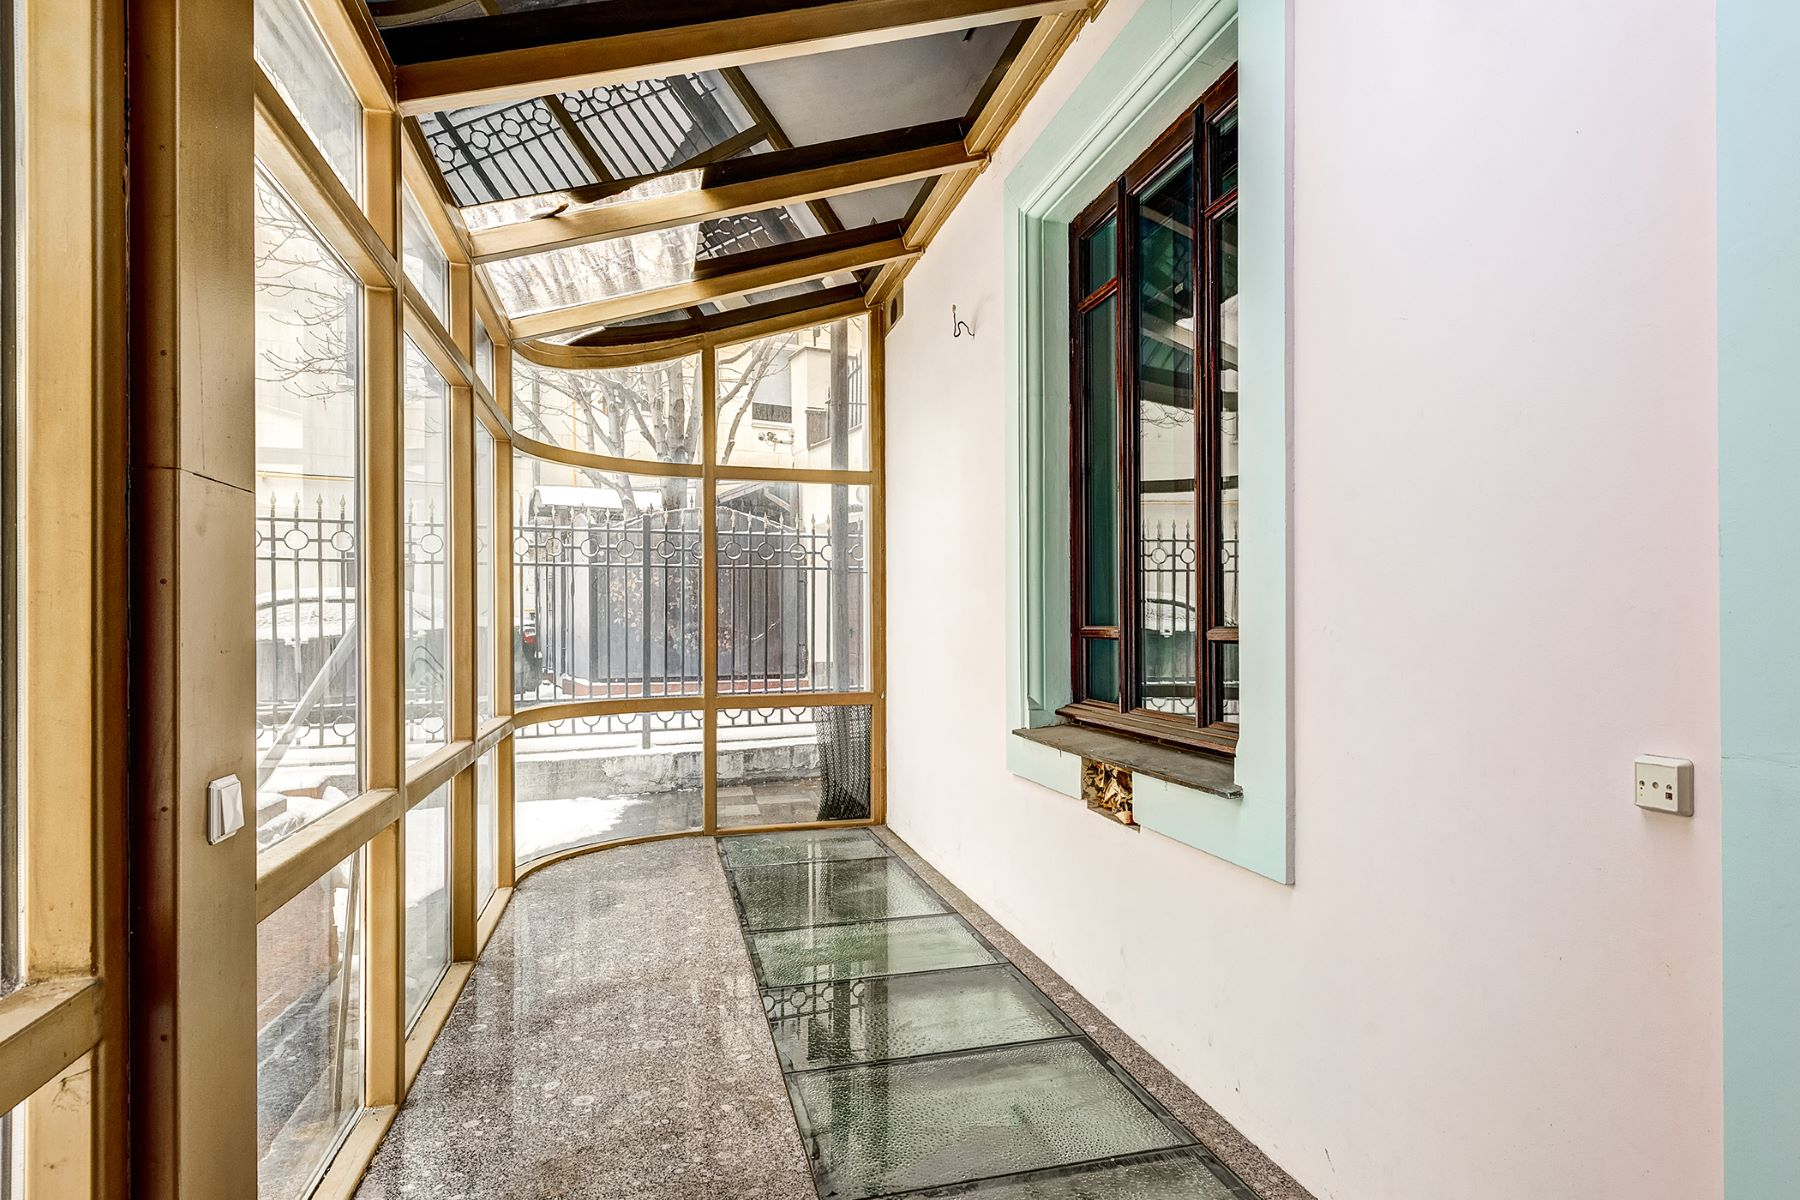 Additional photo for property listing at Historic house of the 19-20th century Moscow, Moscow City Russia